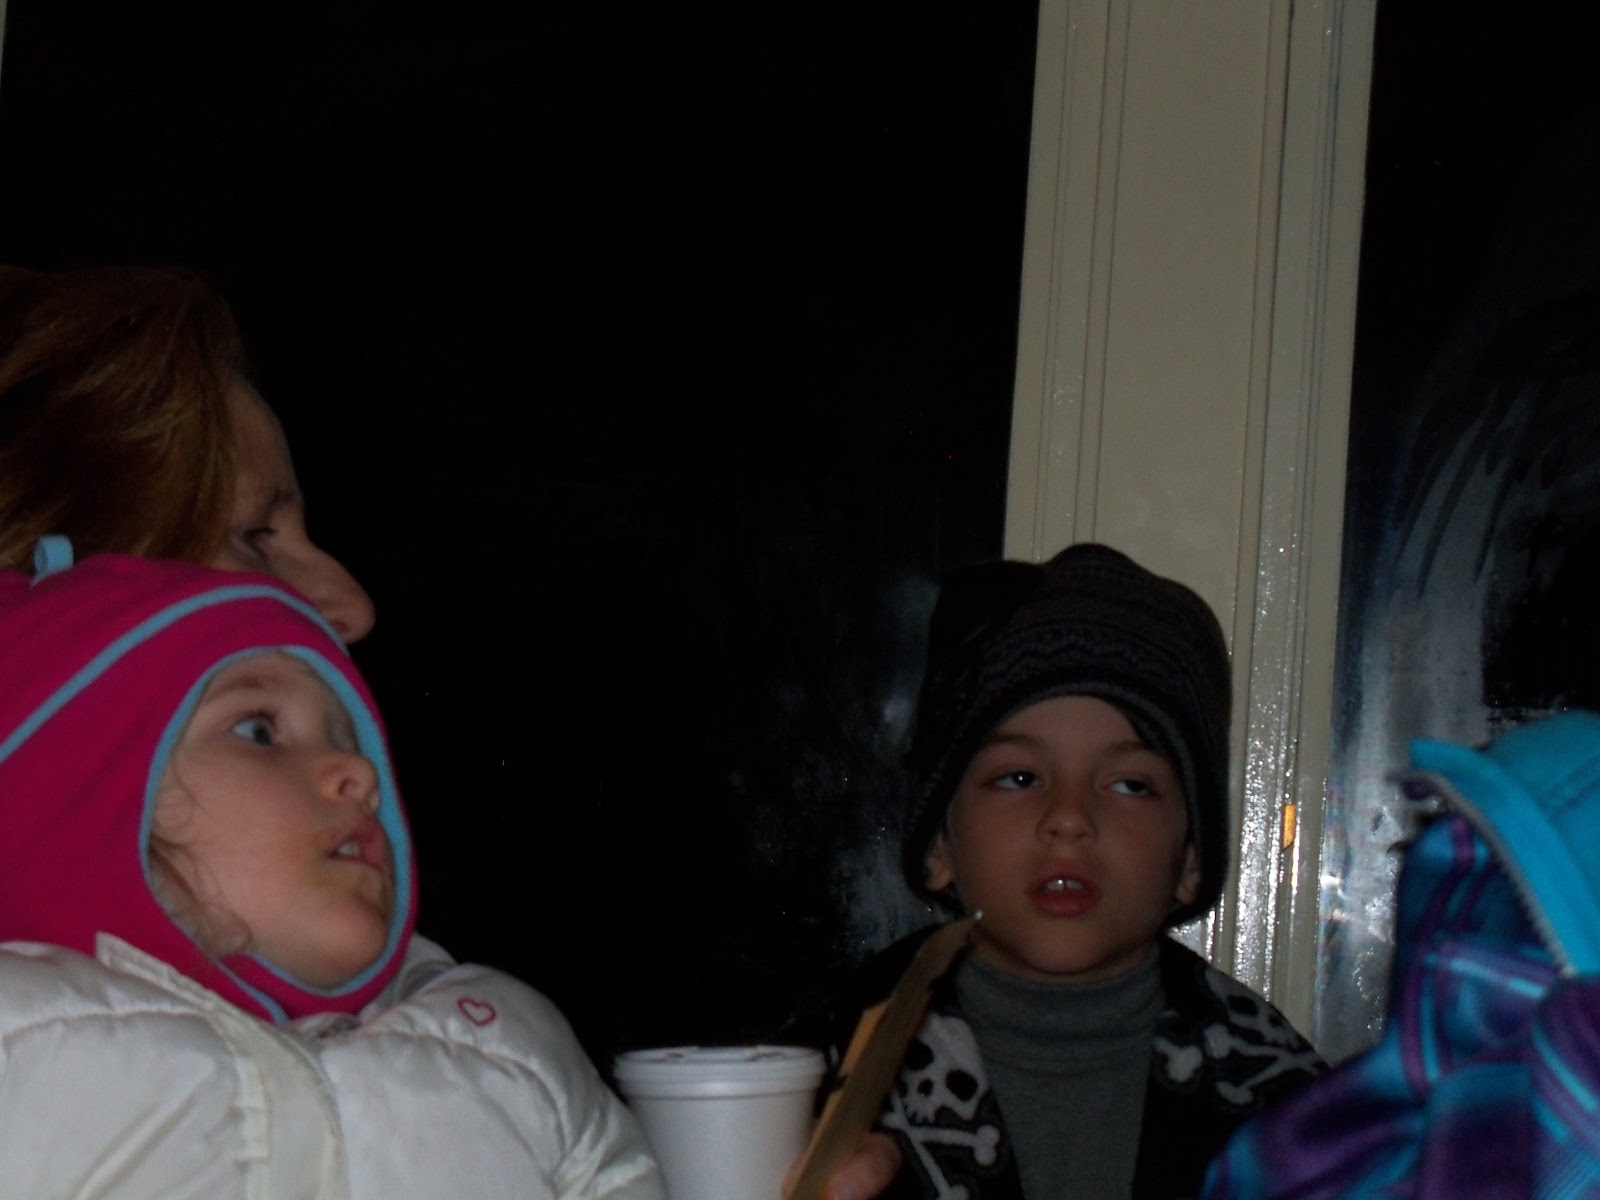 Polar Express Christmas Train 2011 - 115_0988.JPG